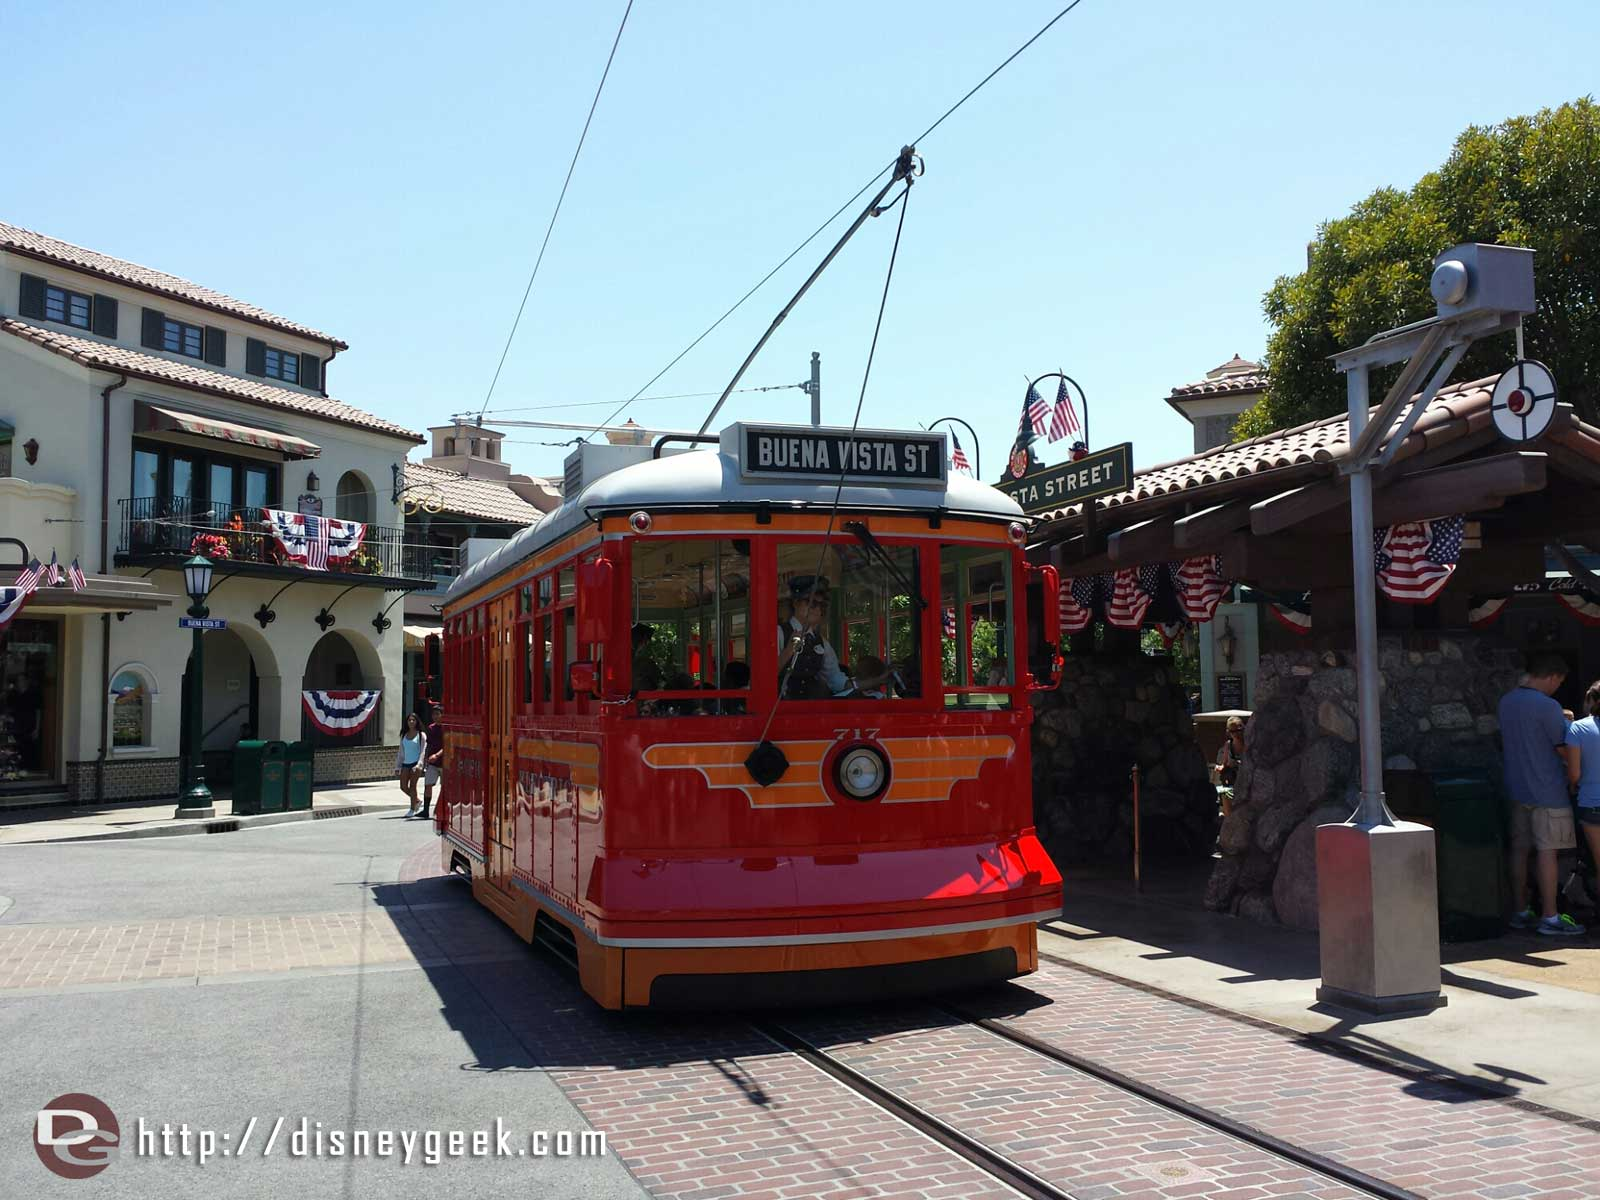 A Red Car Trolley on #BuenaVistaStreet